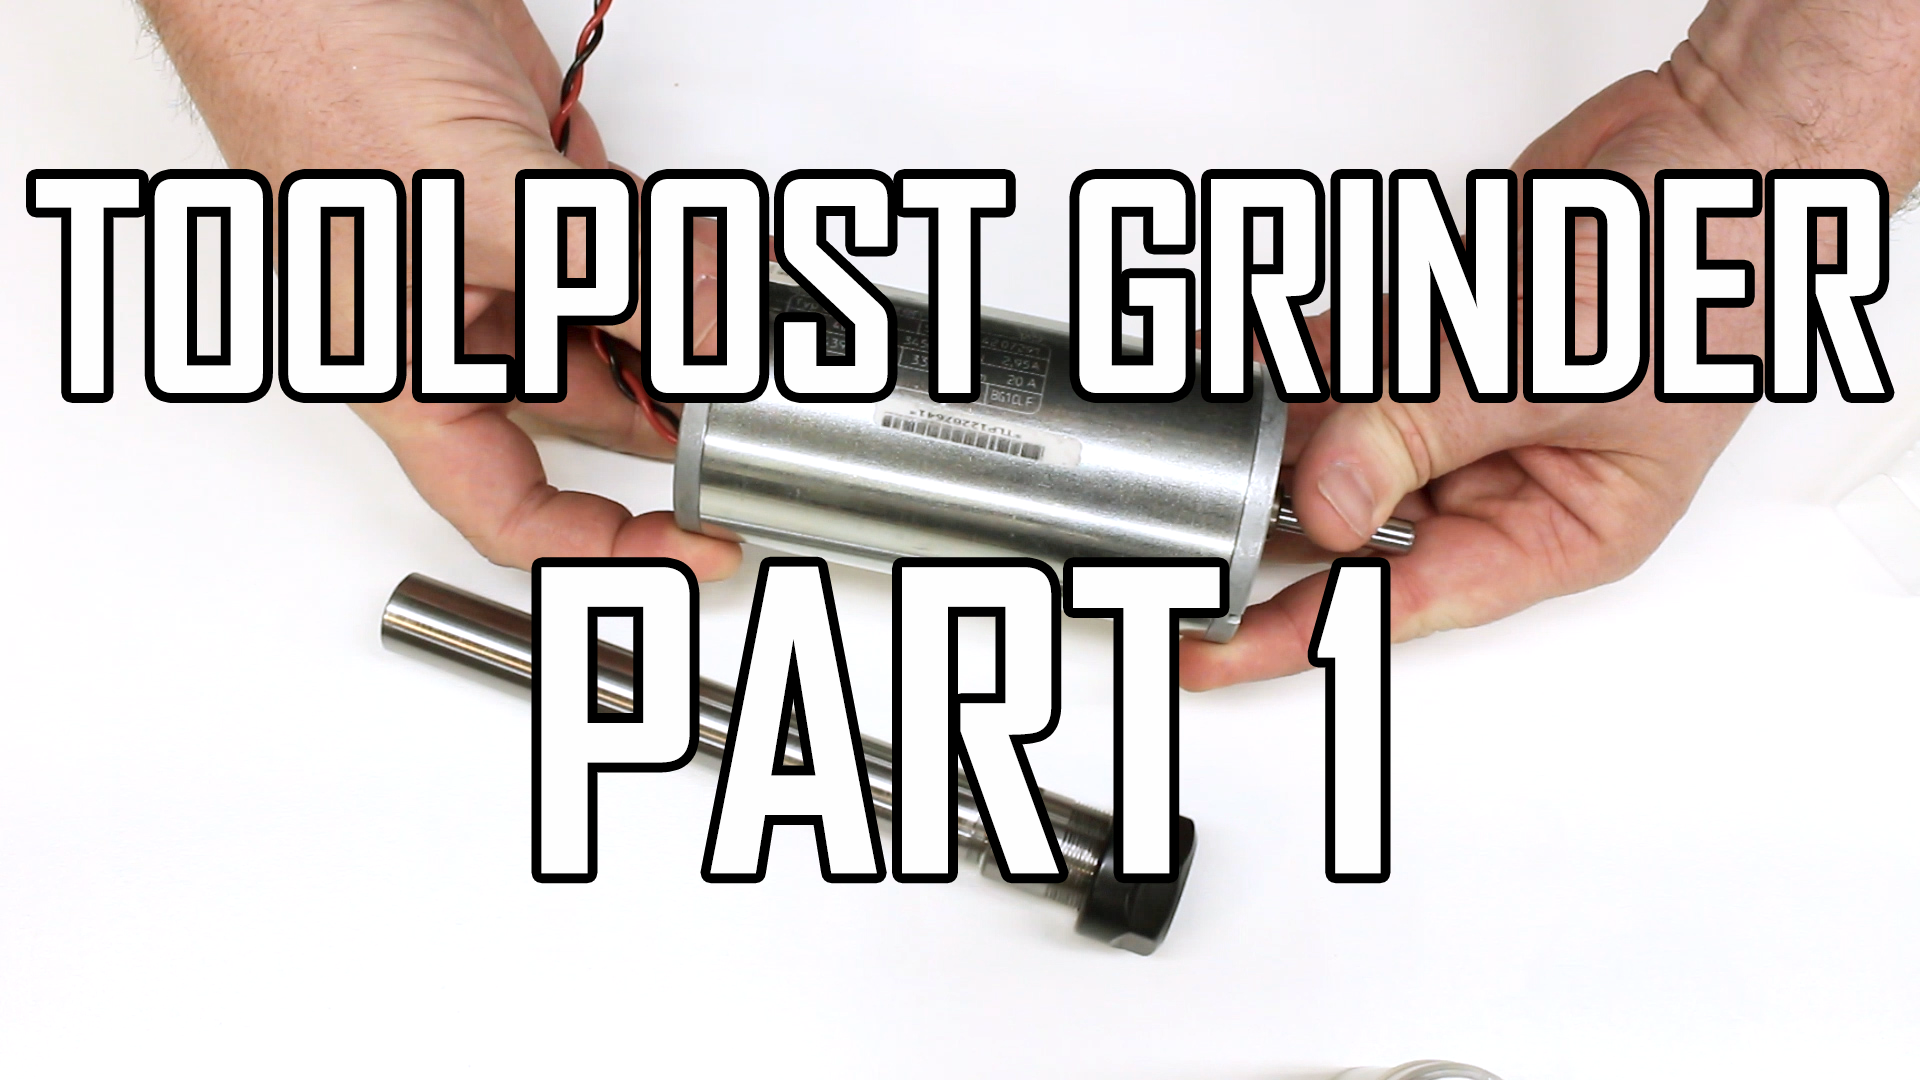 Toolpost Grinder Build Part 1: Introduction